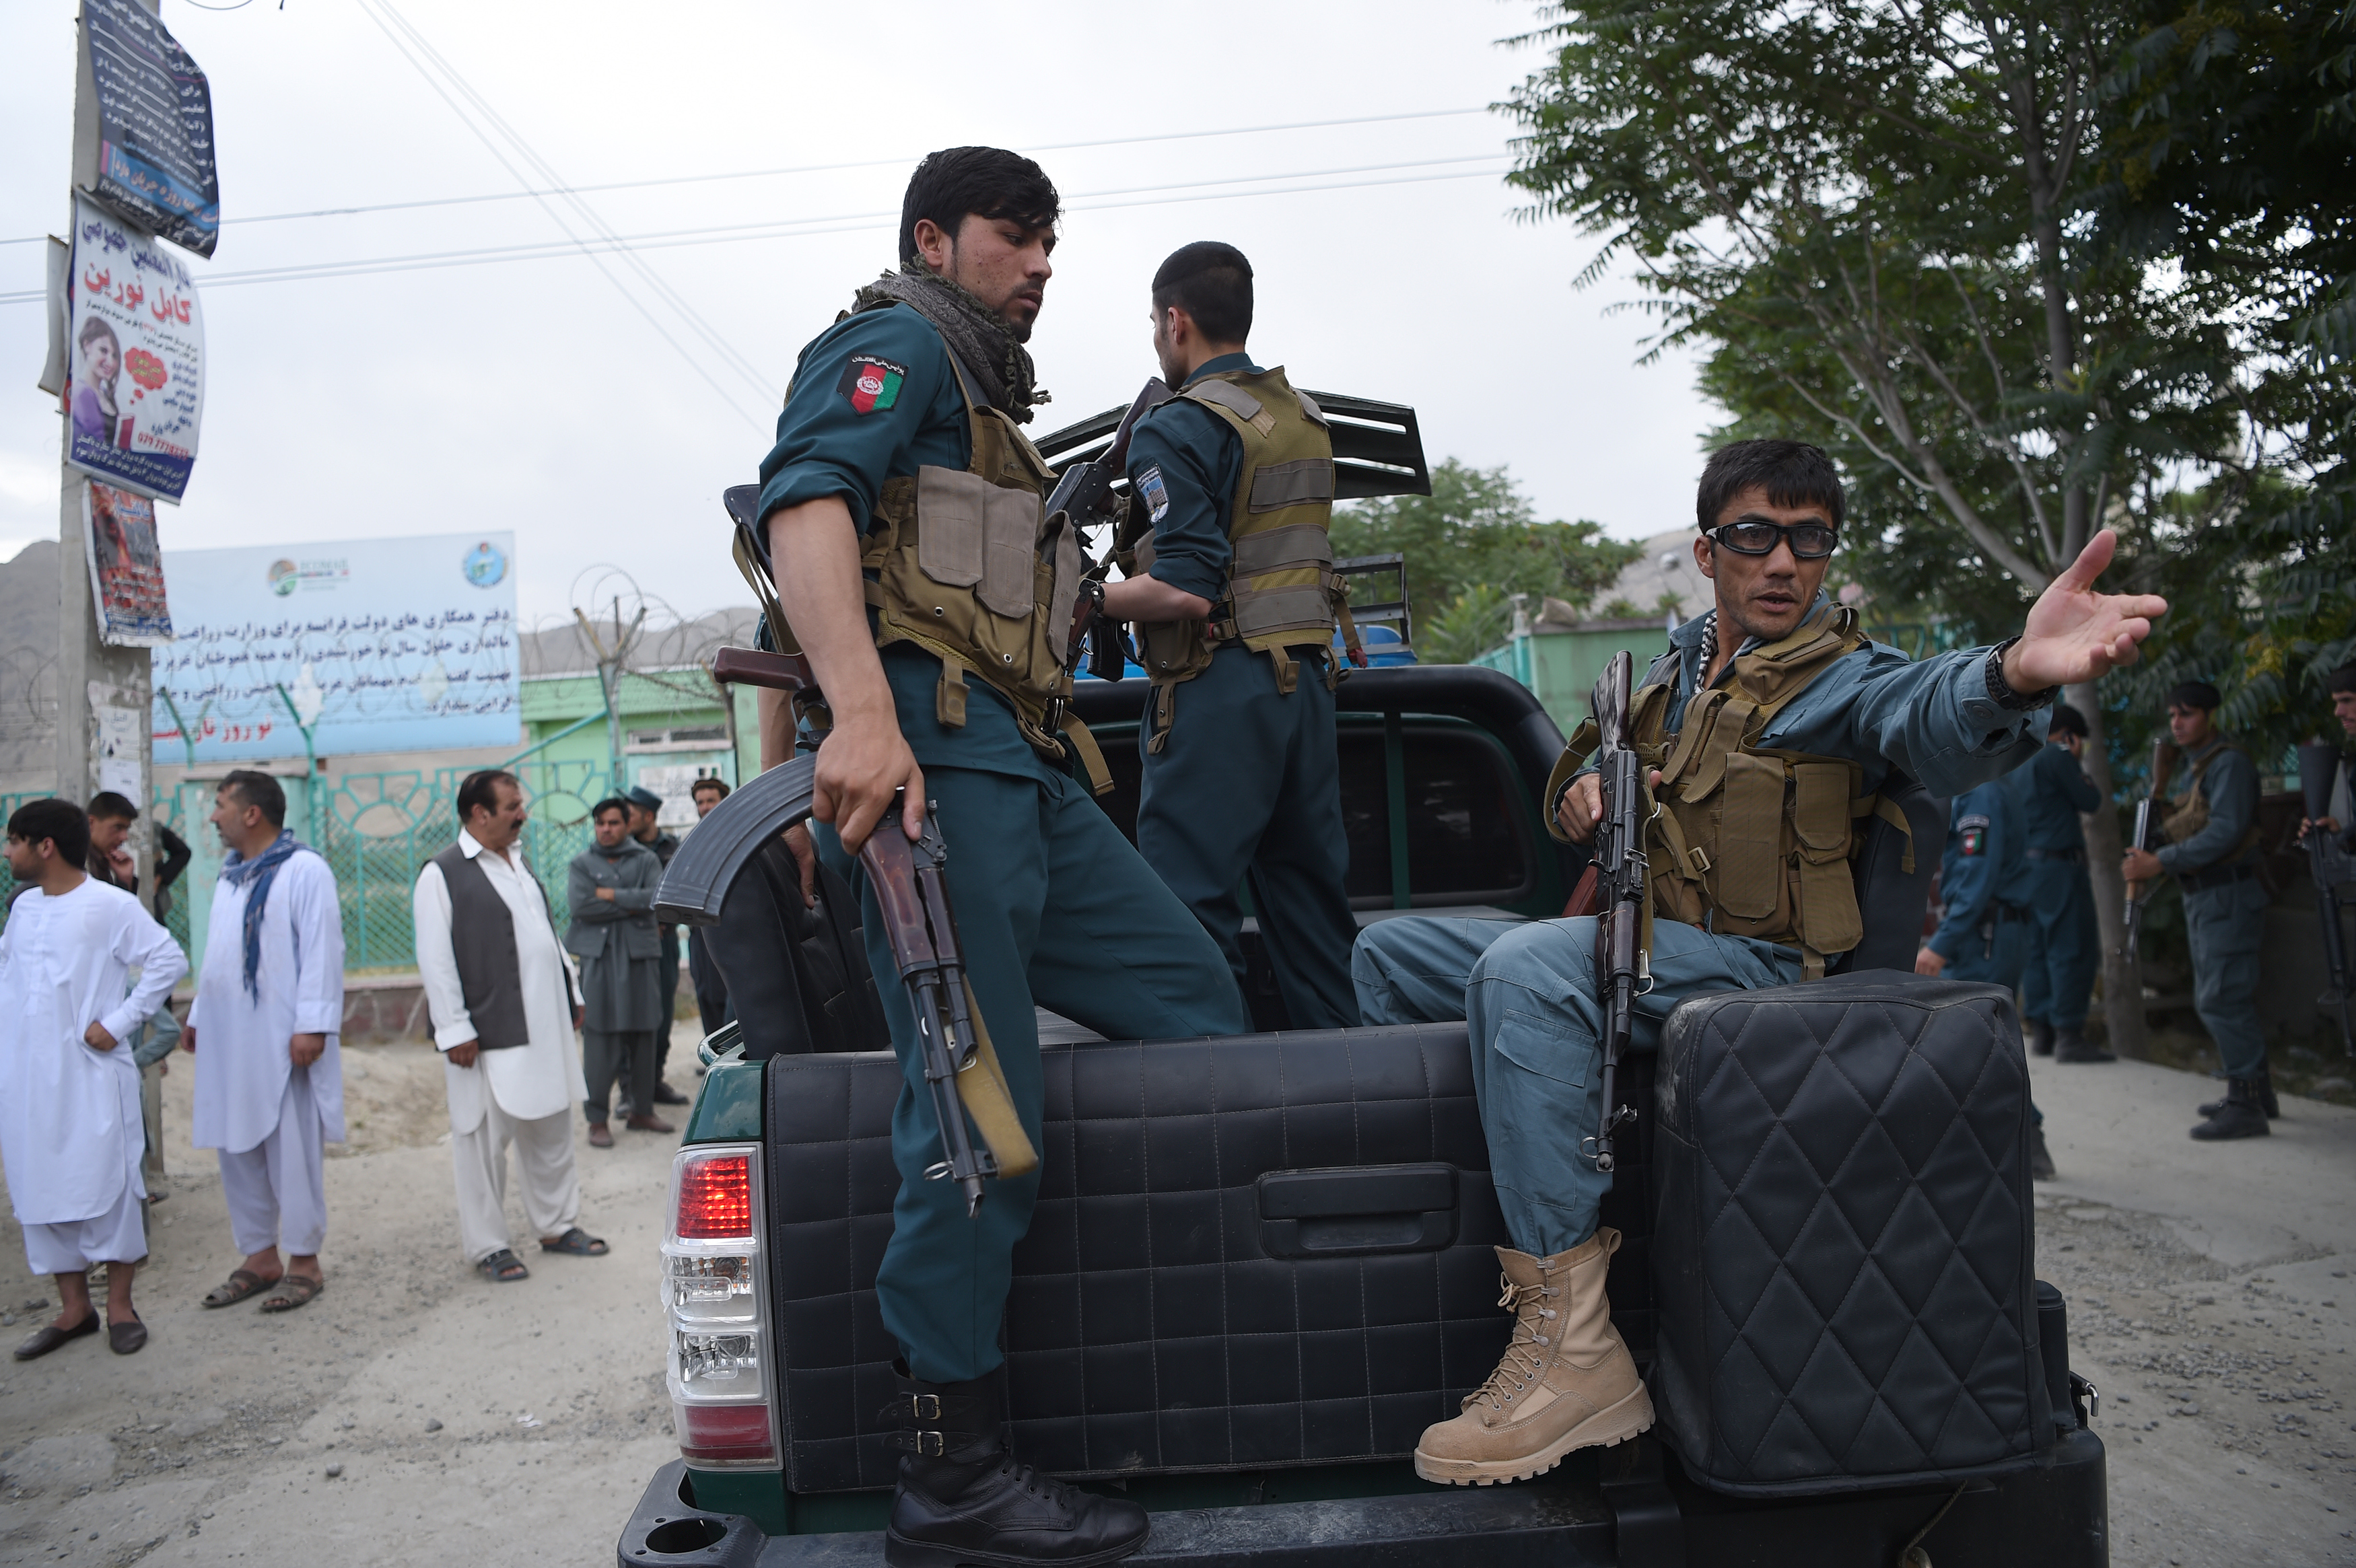 Afghans increasingly confident in 119 police hotline